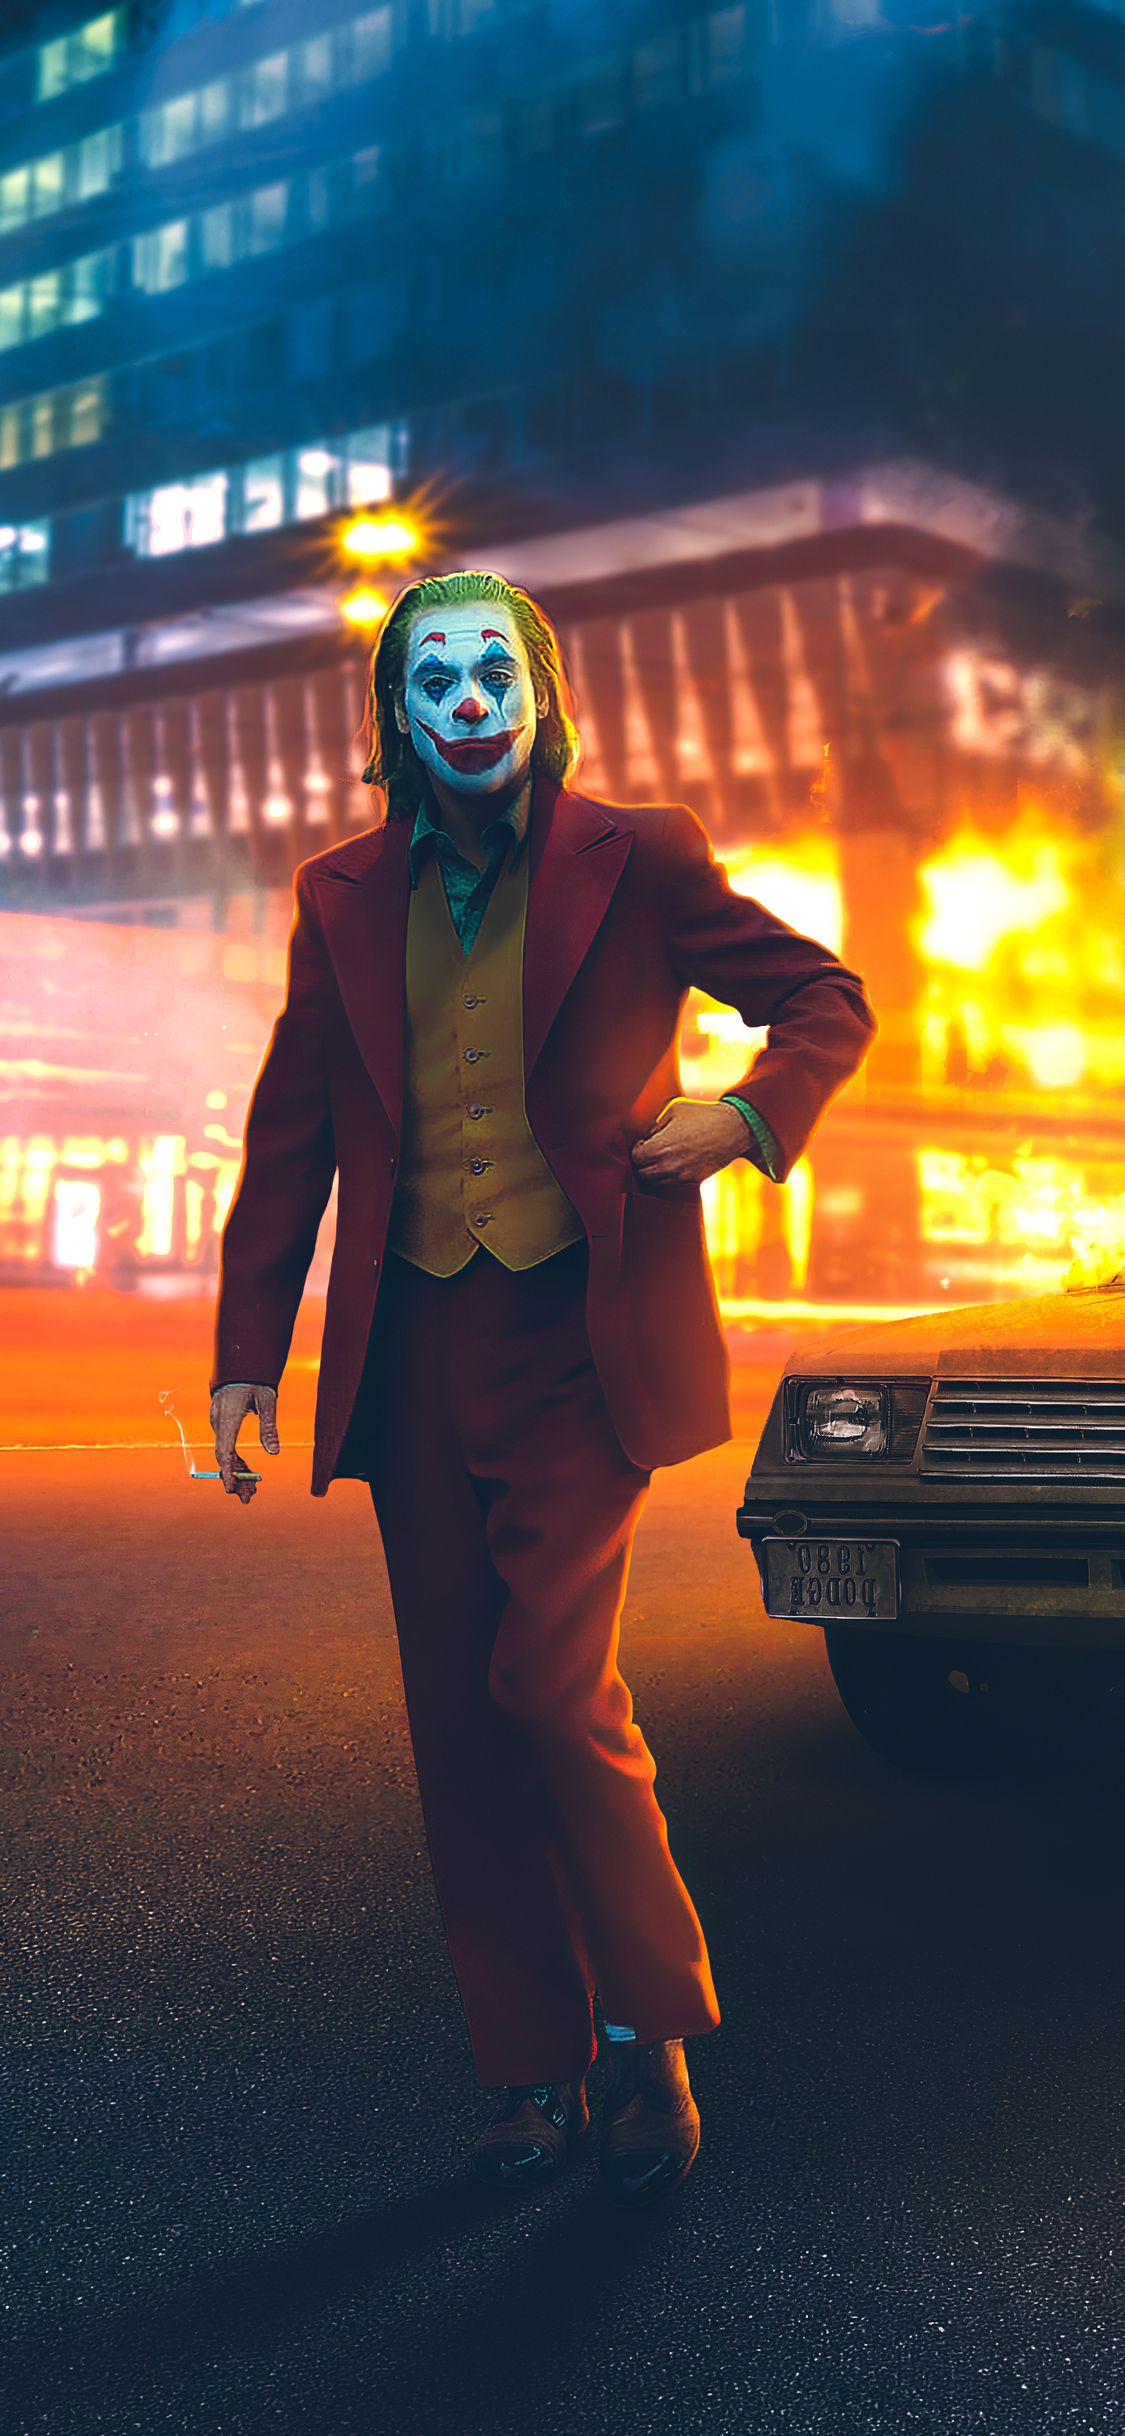 joker-walk-of-fame-sx.jpg